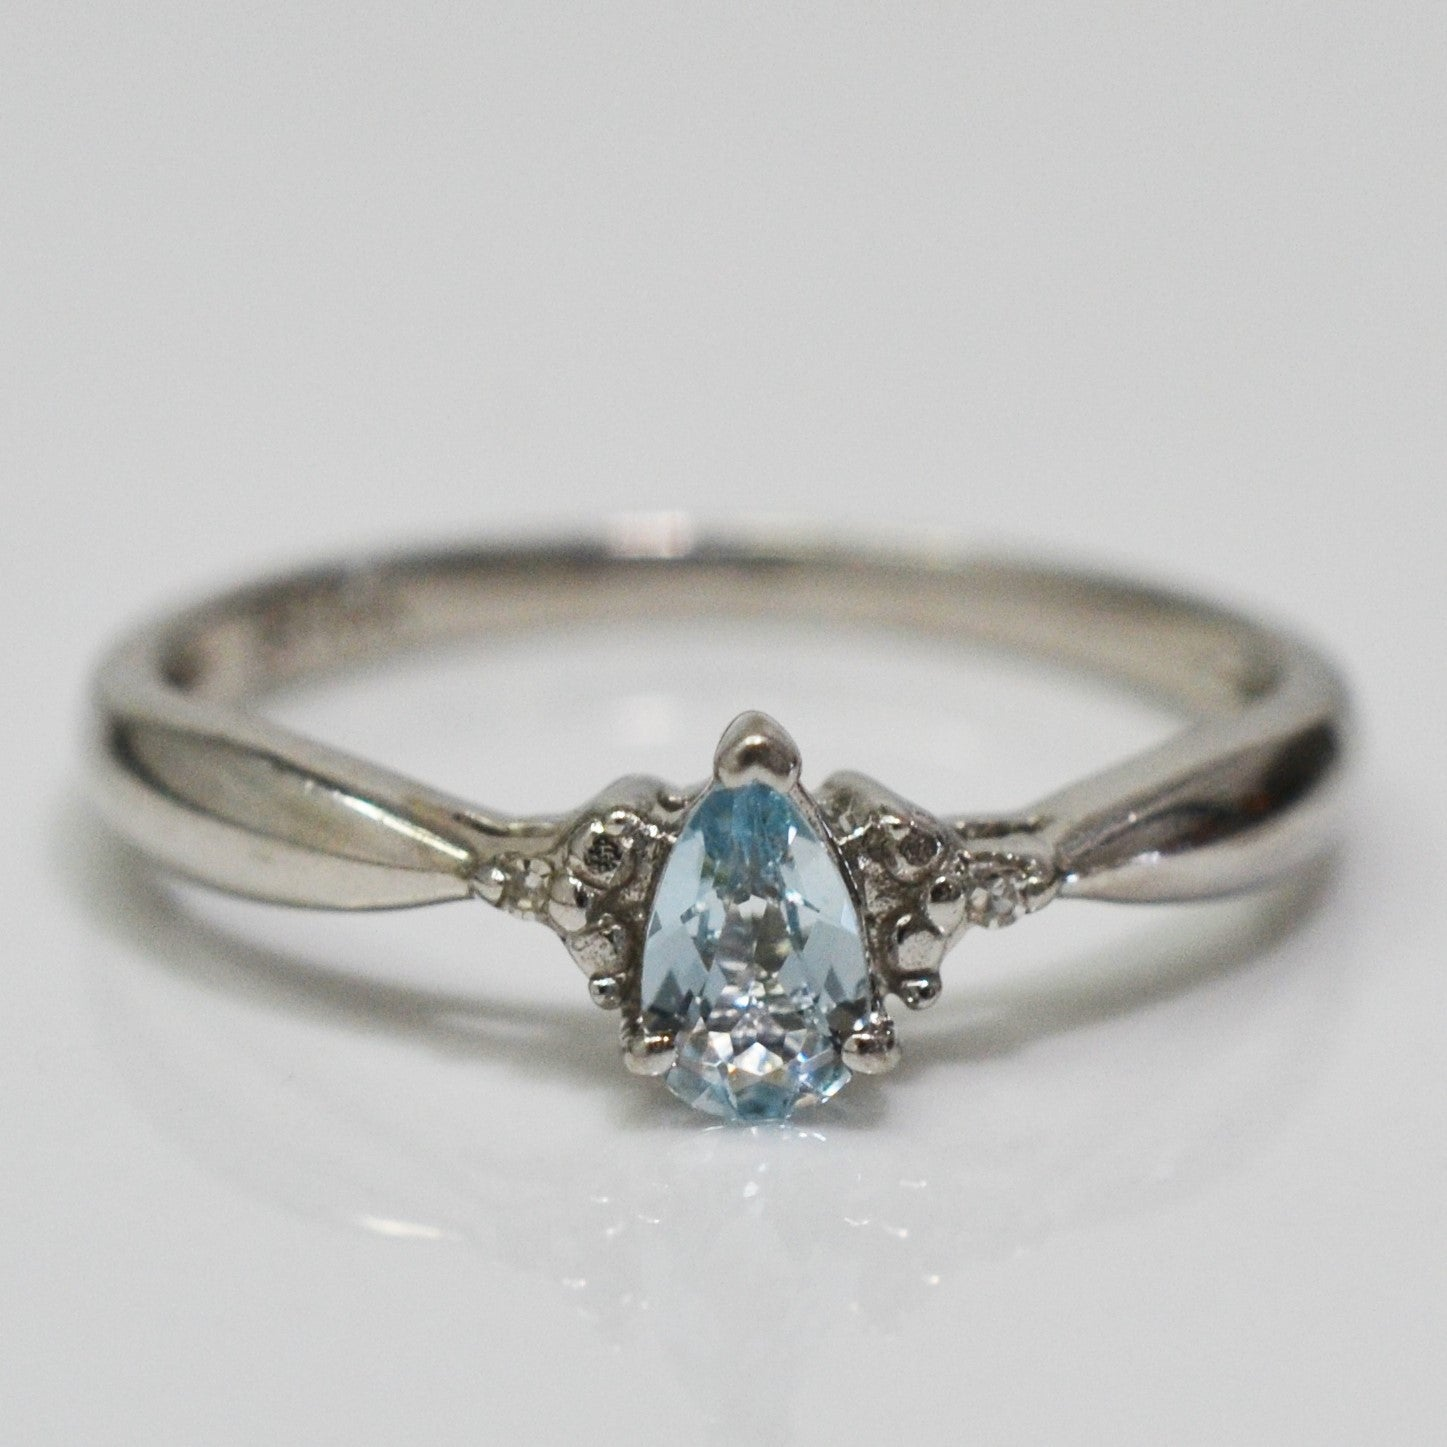 Pear Cut Aquamarine & Diamond Ring | 0.01 ctw, SZ 5.5 |